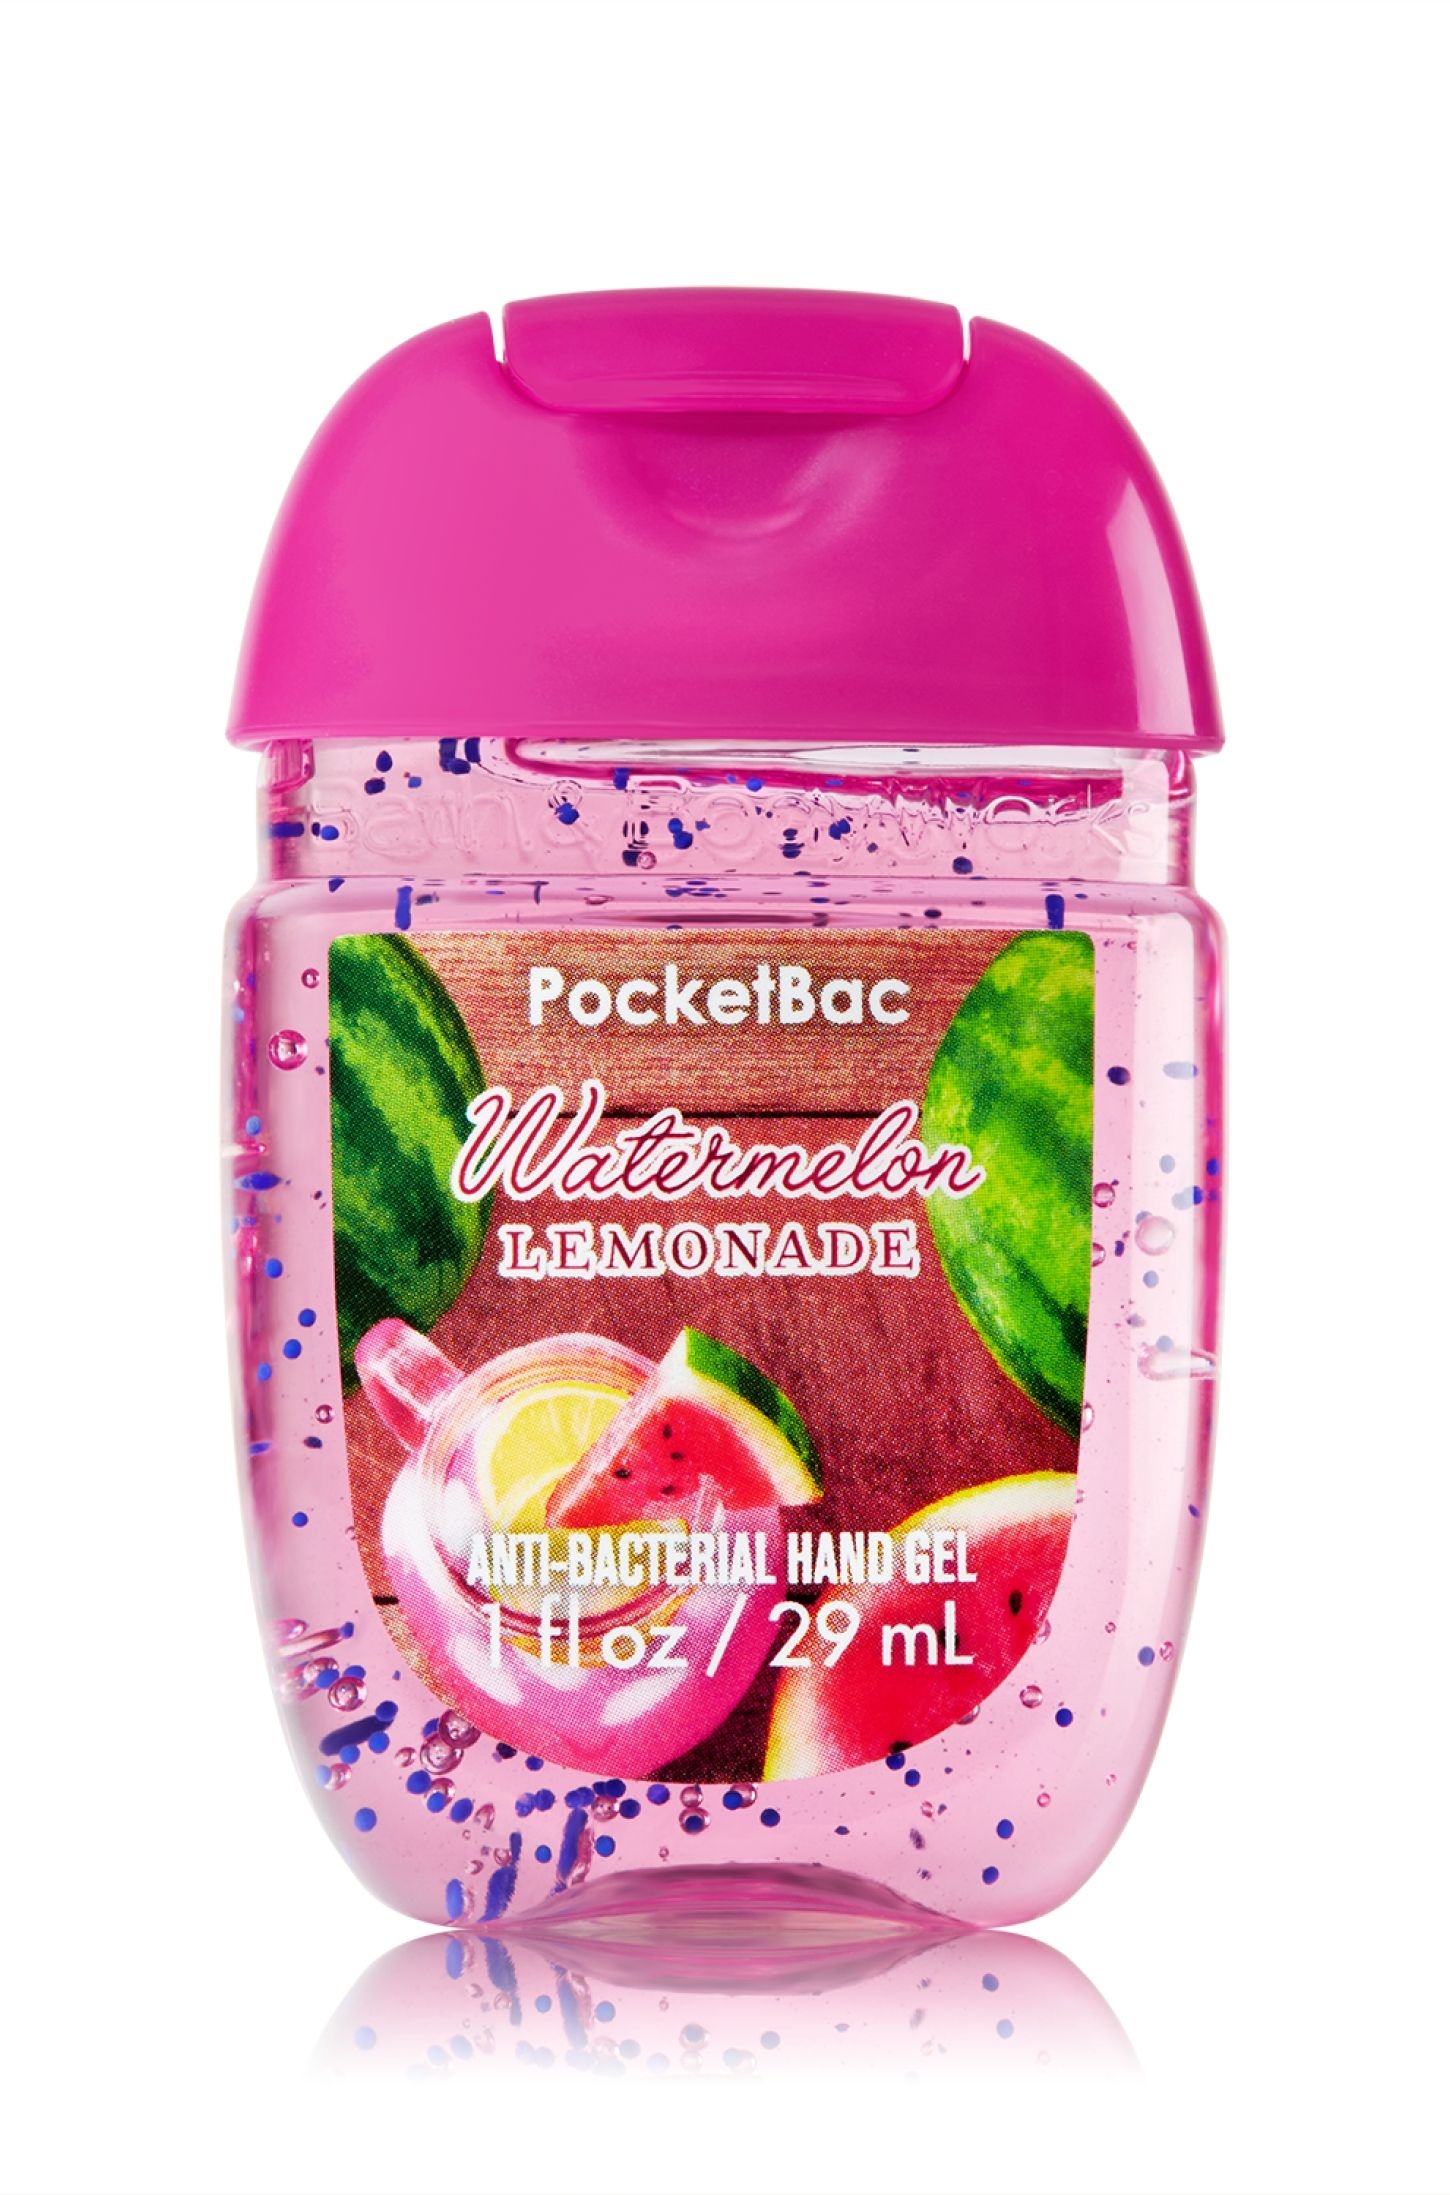 Watermelon Lemonade Hand Sanitizer 7 6 Fl Oz Bath Body Works